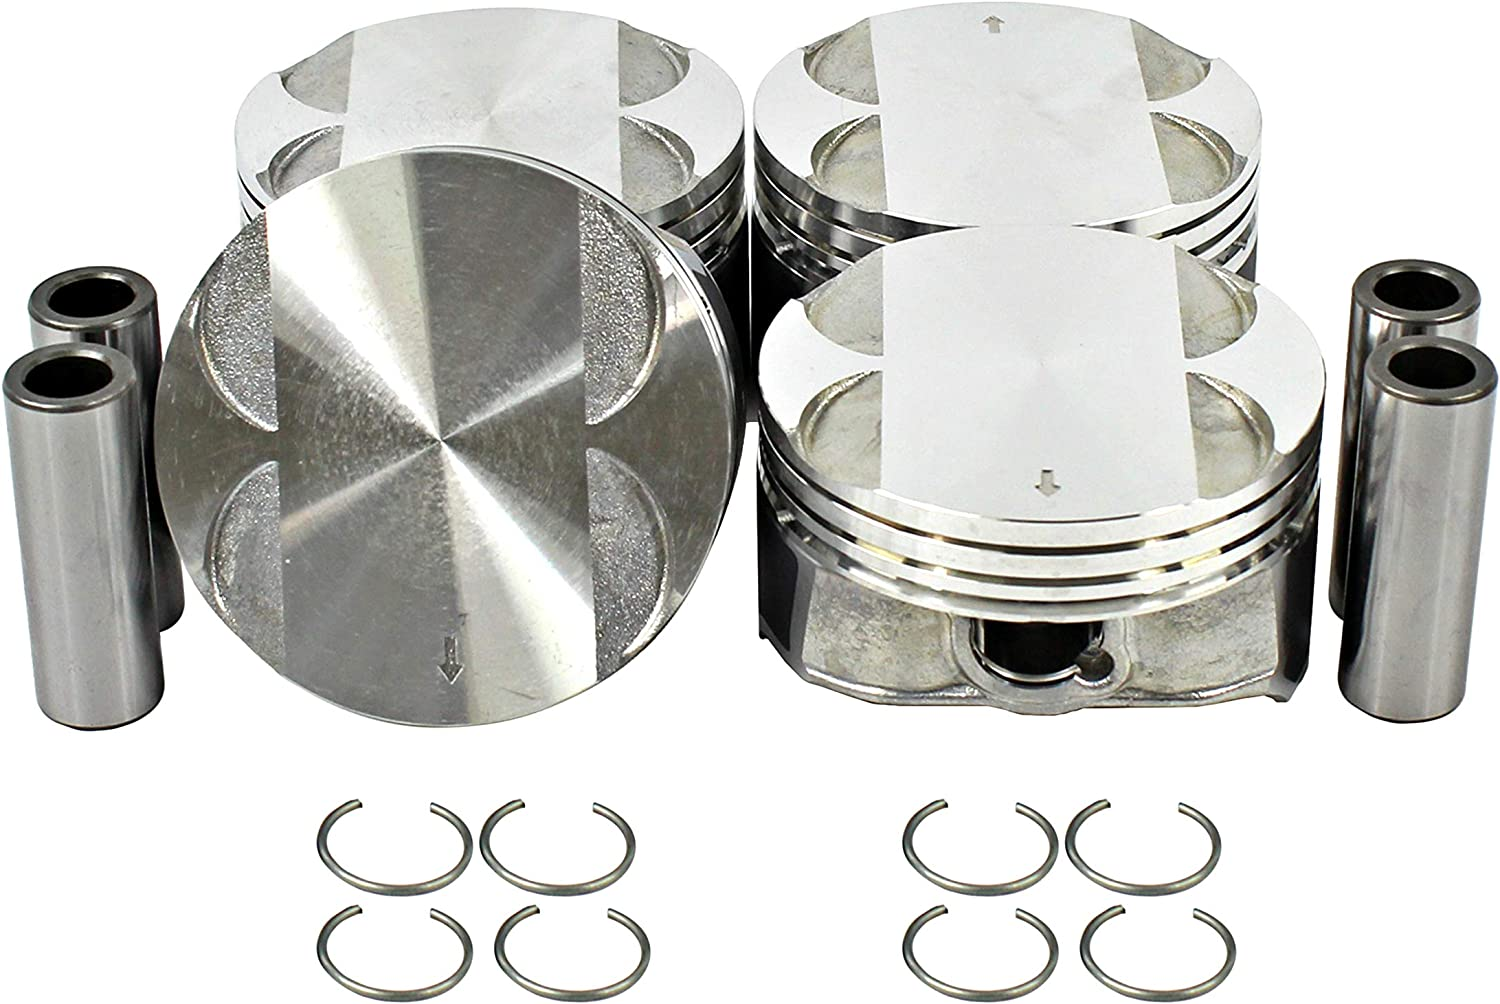 DNJ P336 Piston Set for GMC Ponti Popular SEAL limited product product 2006-2015 Buick Chevrolet